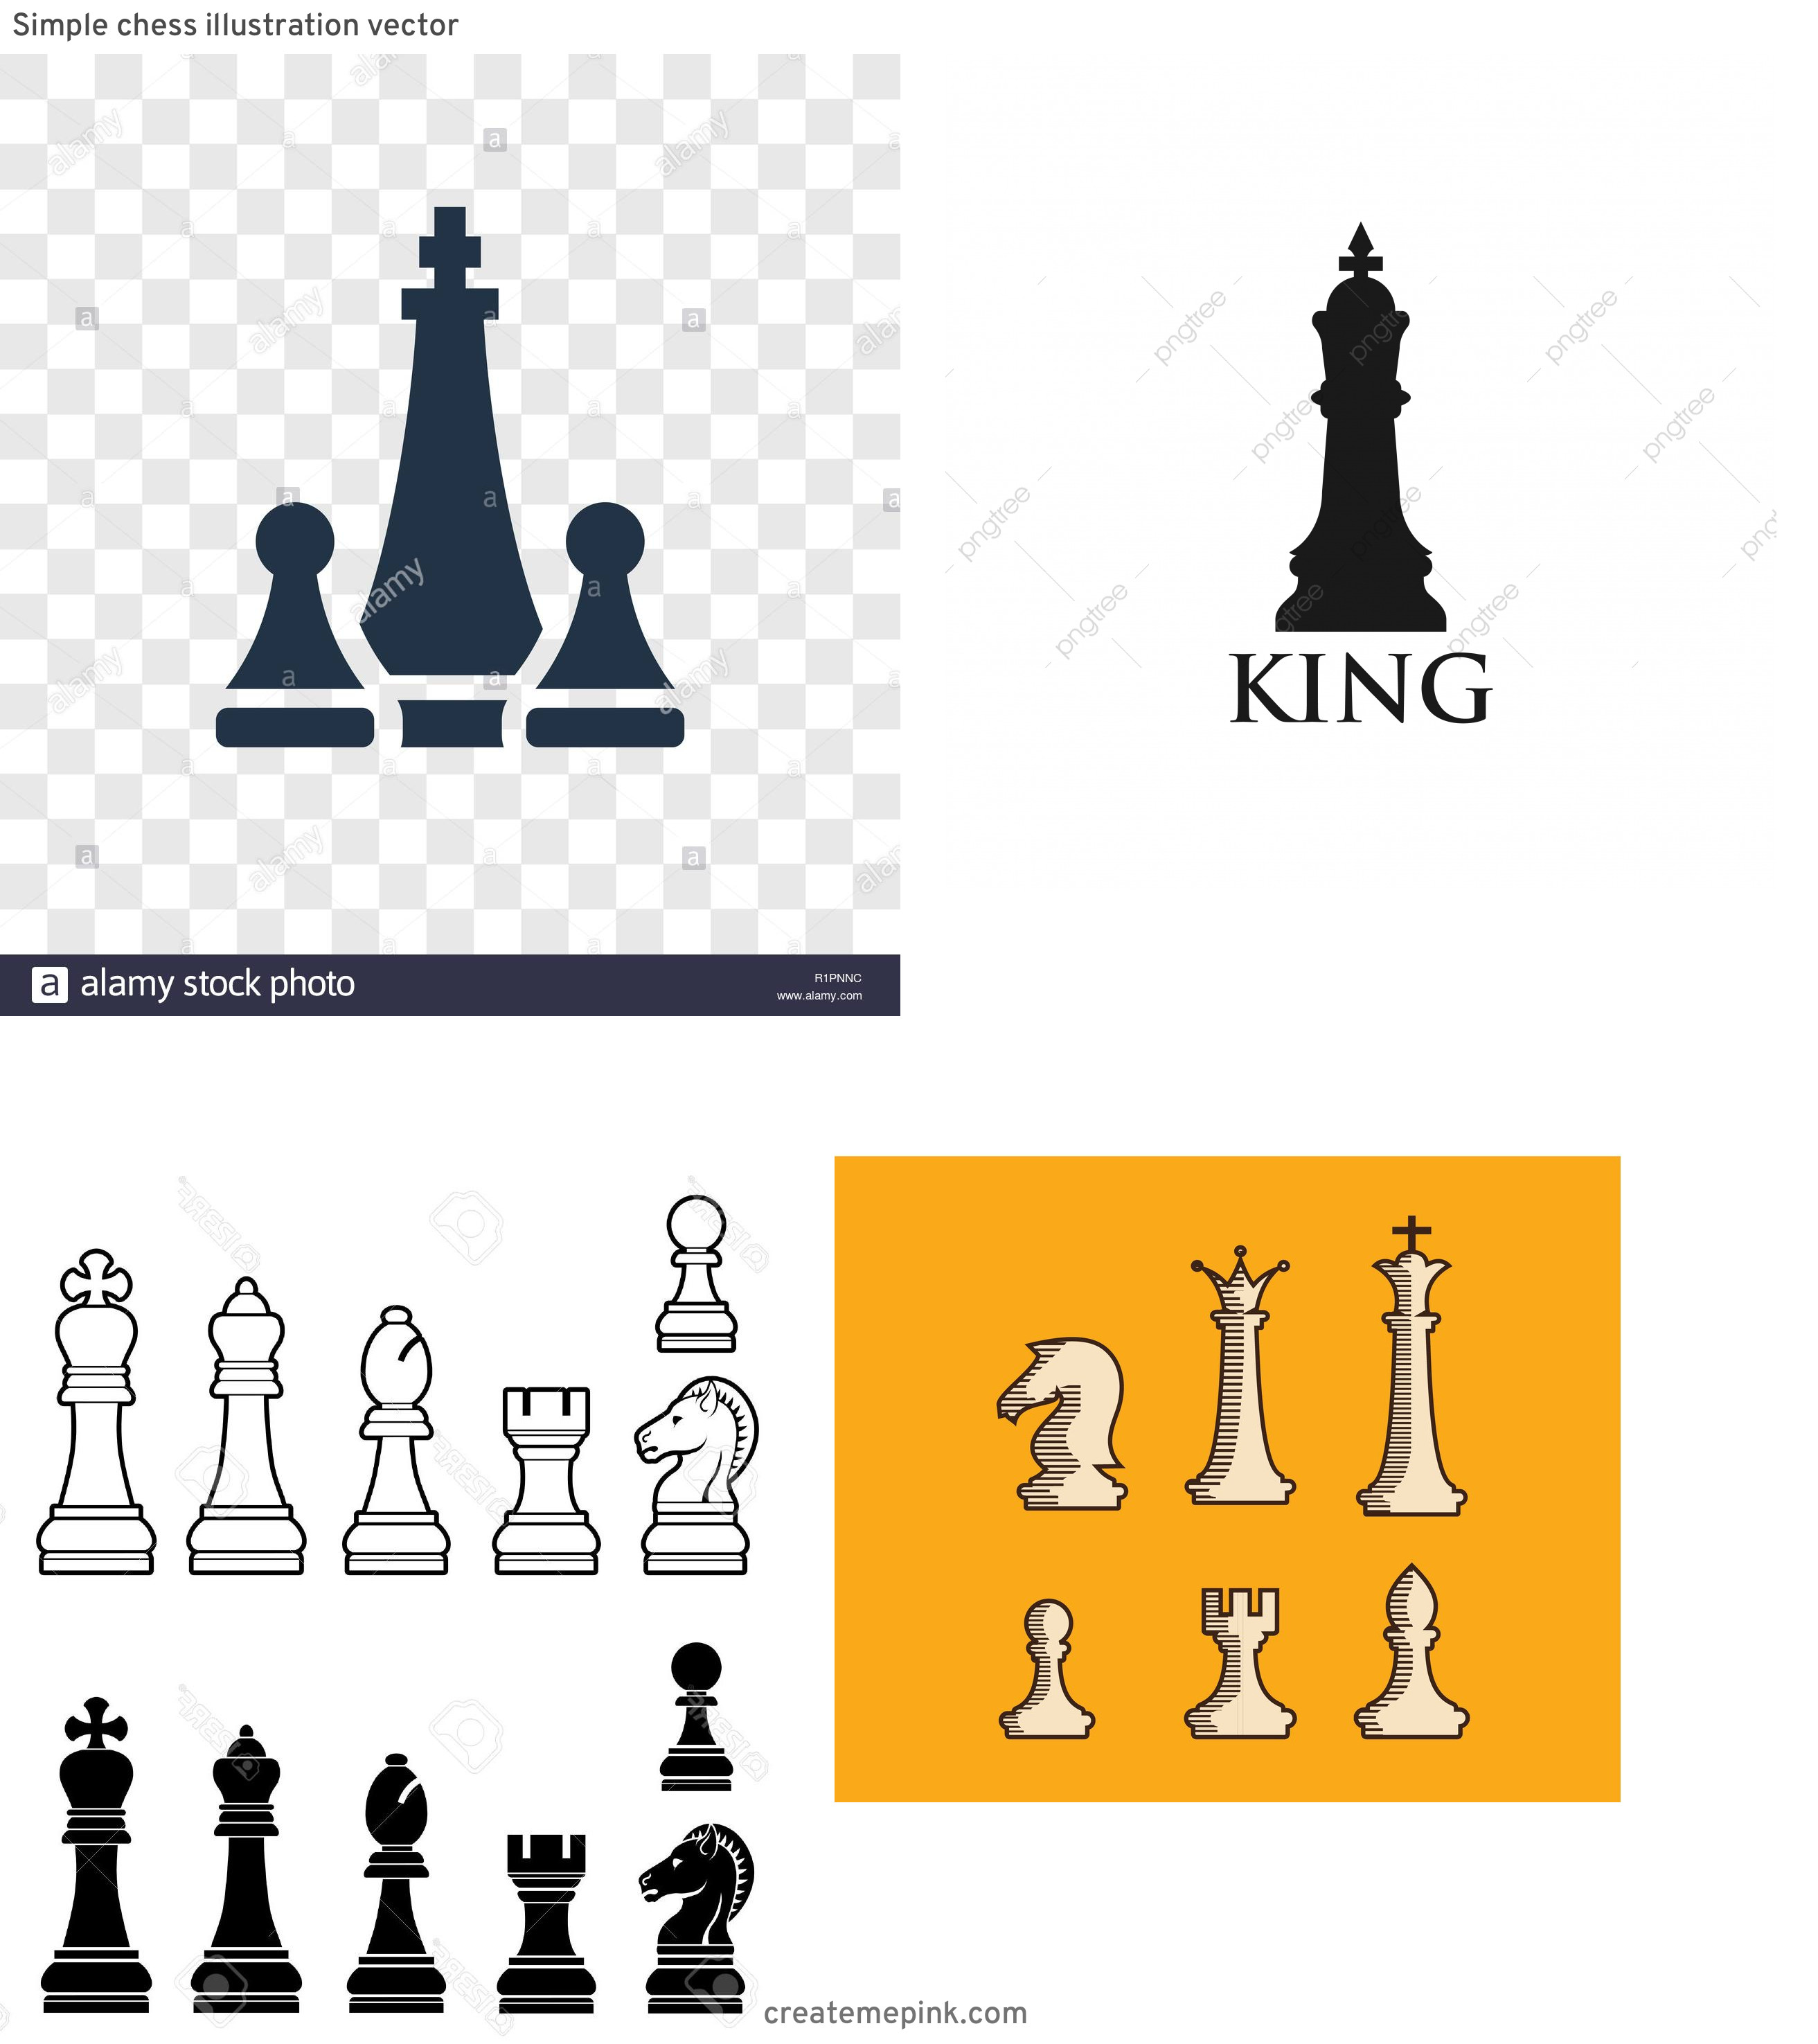 Chess Vector Graphic: Simple Chess Illustration Vector